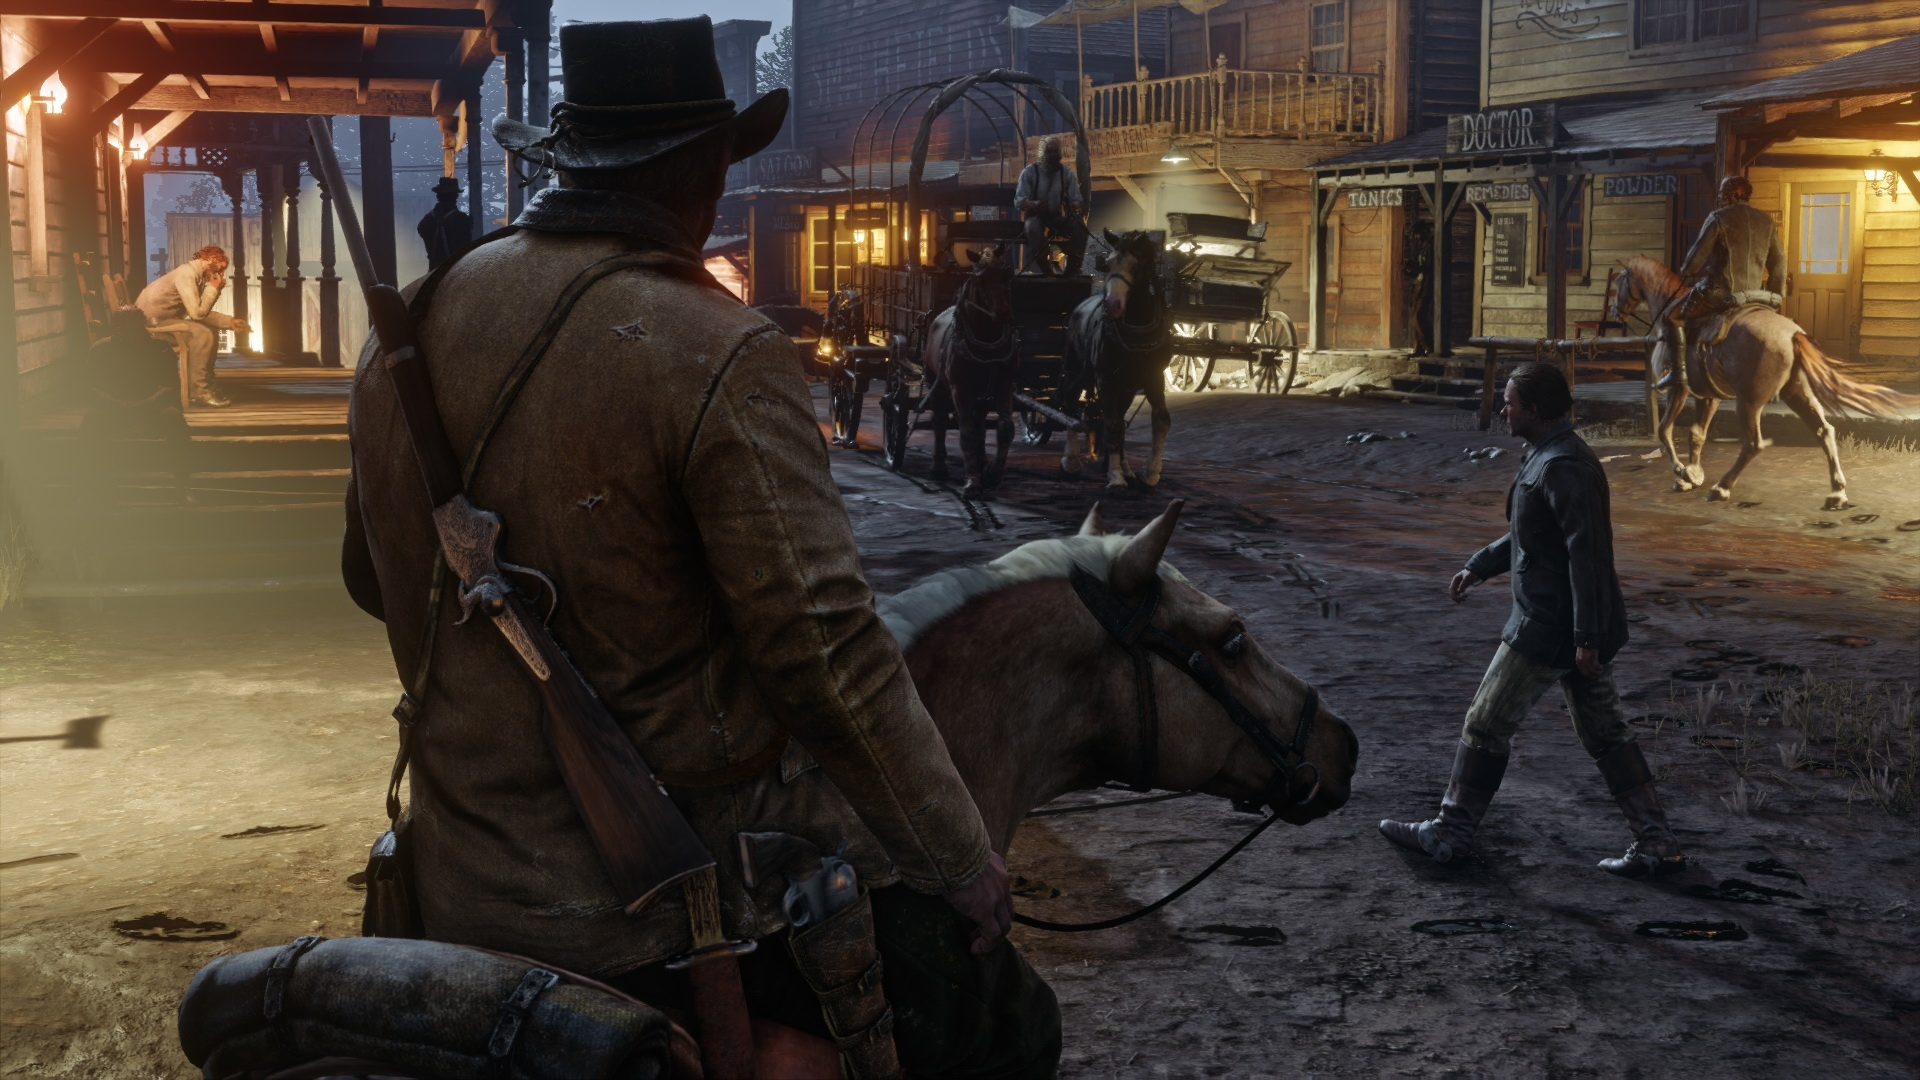 'Bom tấn' cao bồi Red Dead Redemption 2 tung trailer đẹp mắt